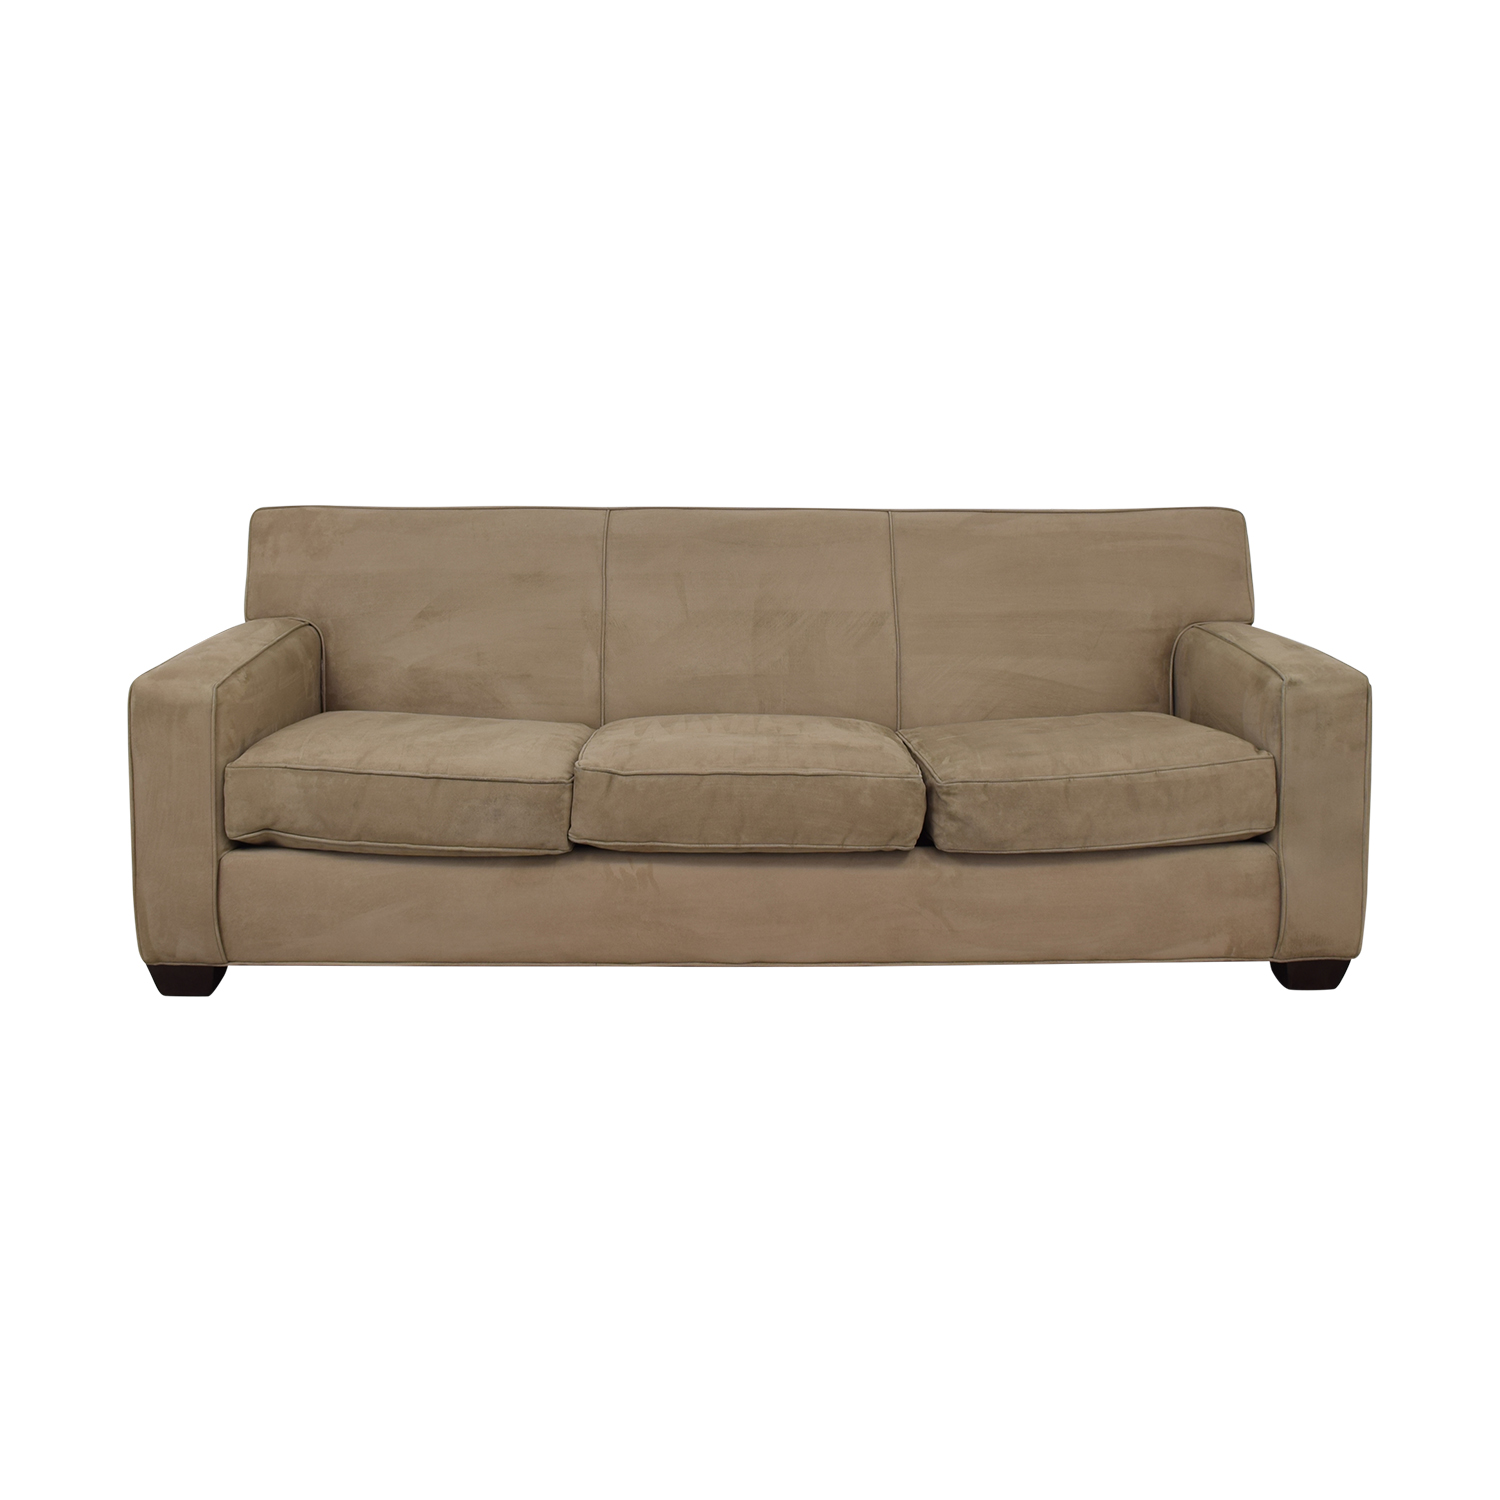 Crate & Barrel Tan Sofa Crate & Barrel